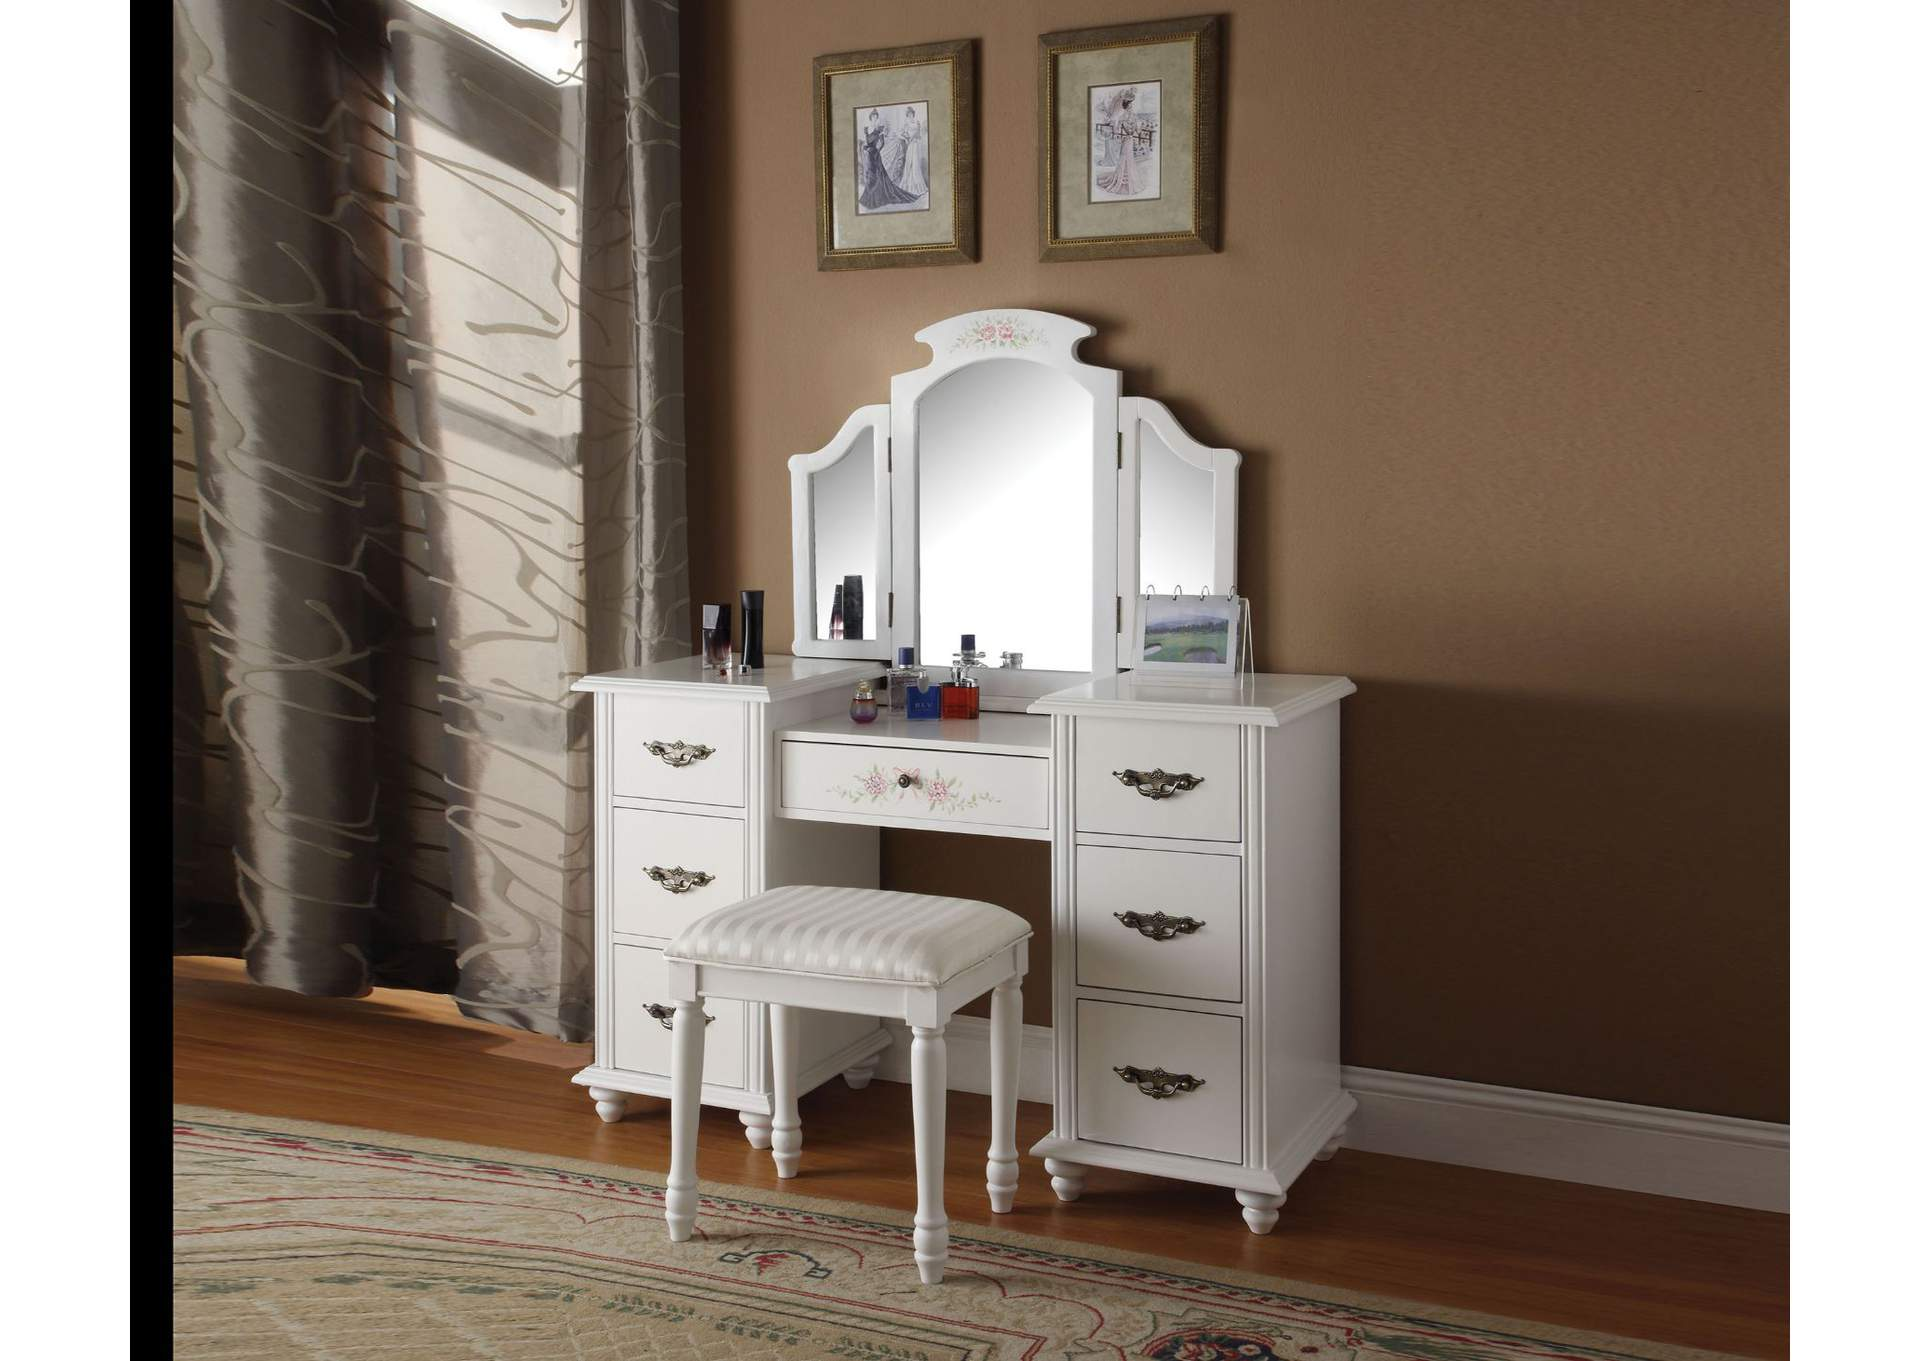 Torian White Vanity Desk w/Mirror and Stool,Acme